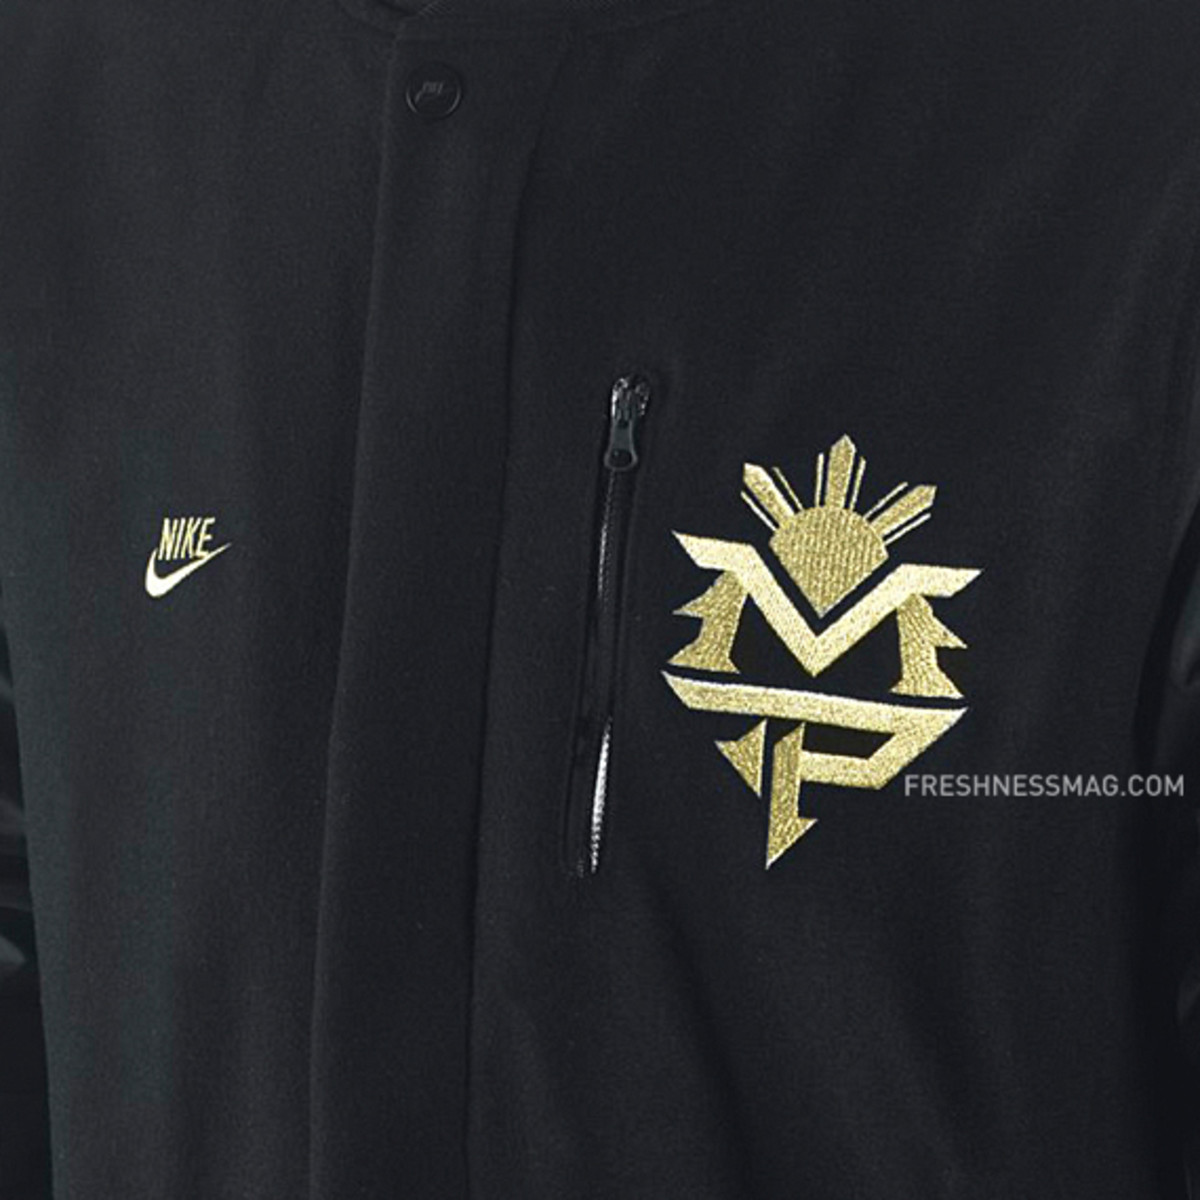 Nike-Manny-Pacquiao-Destroyer-jacket-439819-011-03